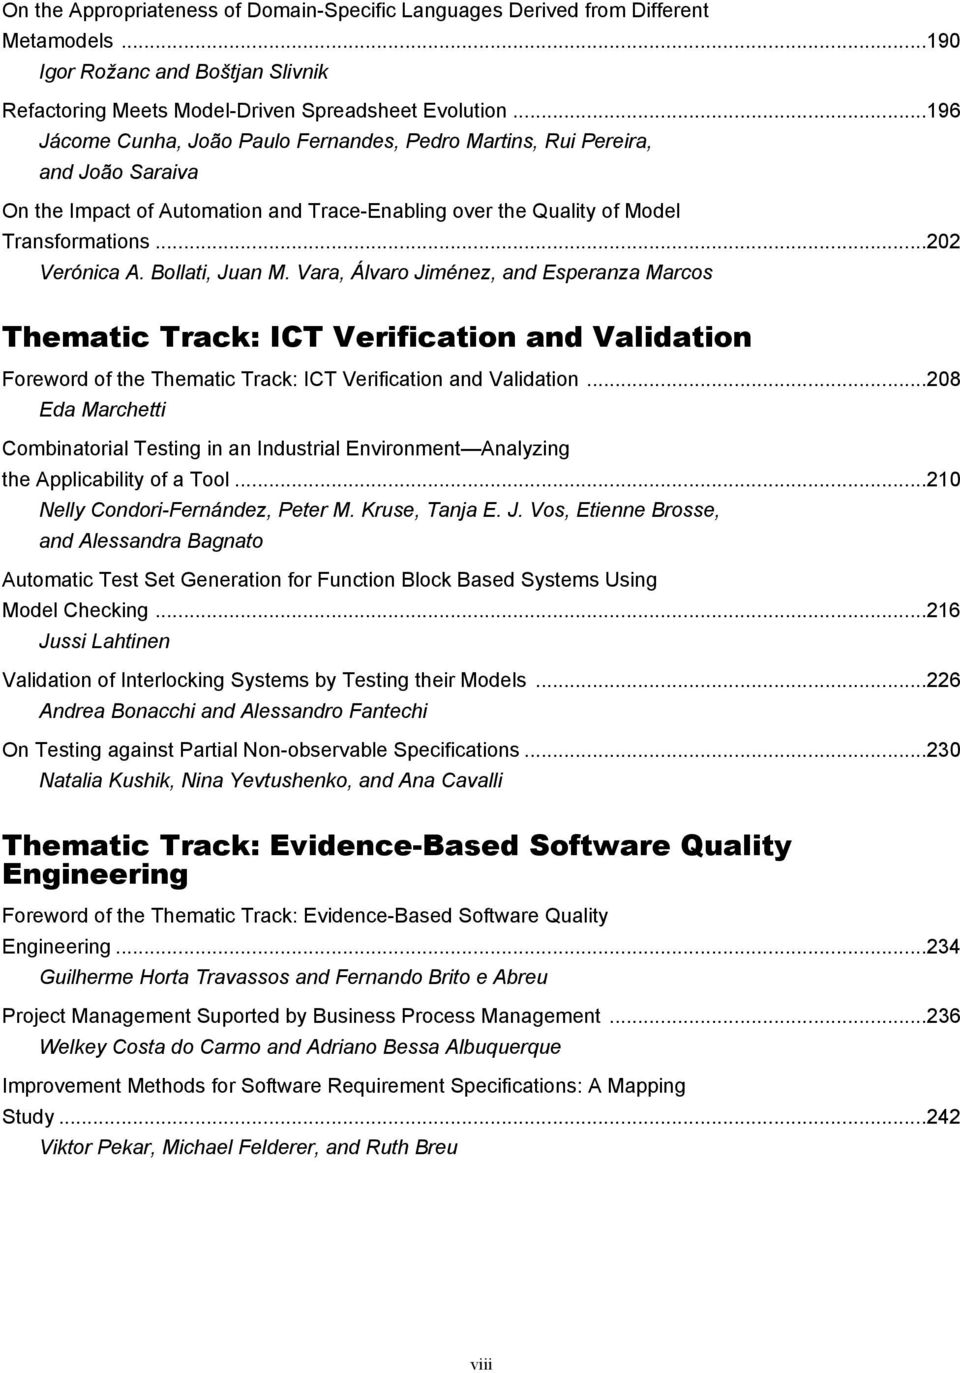 Bollati, Juan M. Vara, Álvaro Jiménez, and Esperanza Marcos Thematic Track: ICT Verification and Validation Foreword of the Thematic Track: ICT Verification and Validation.